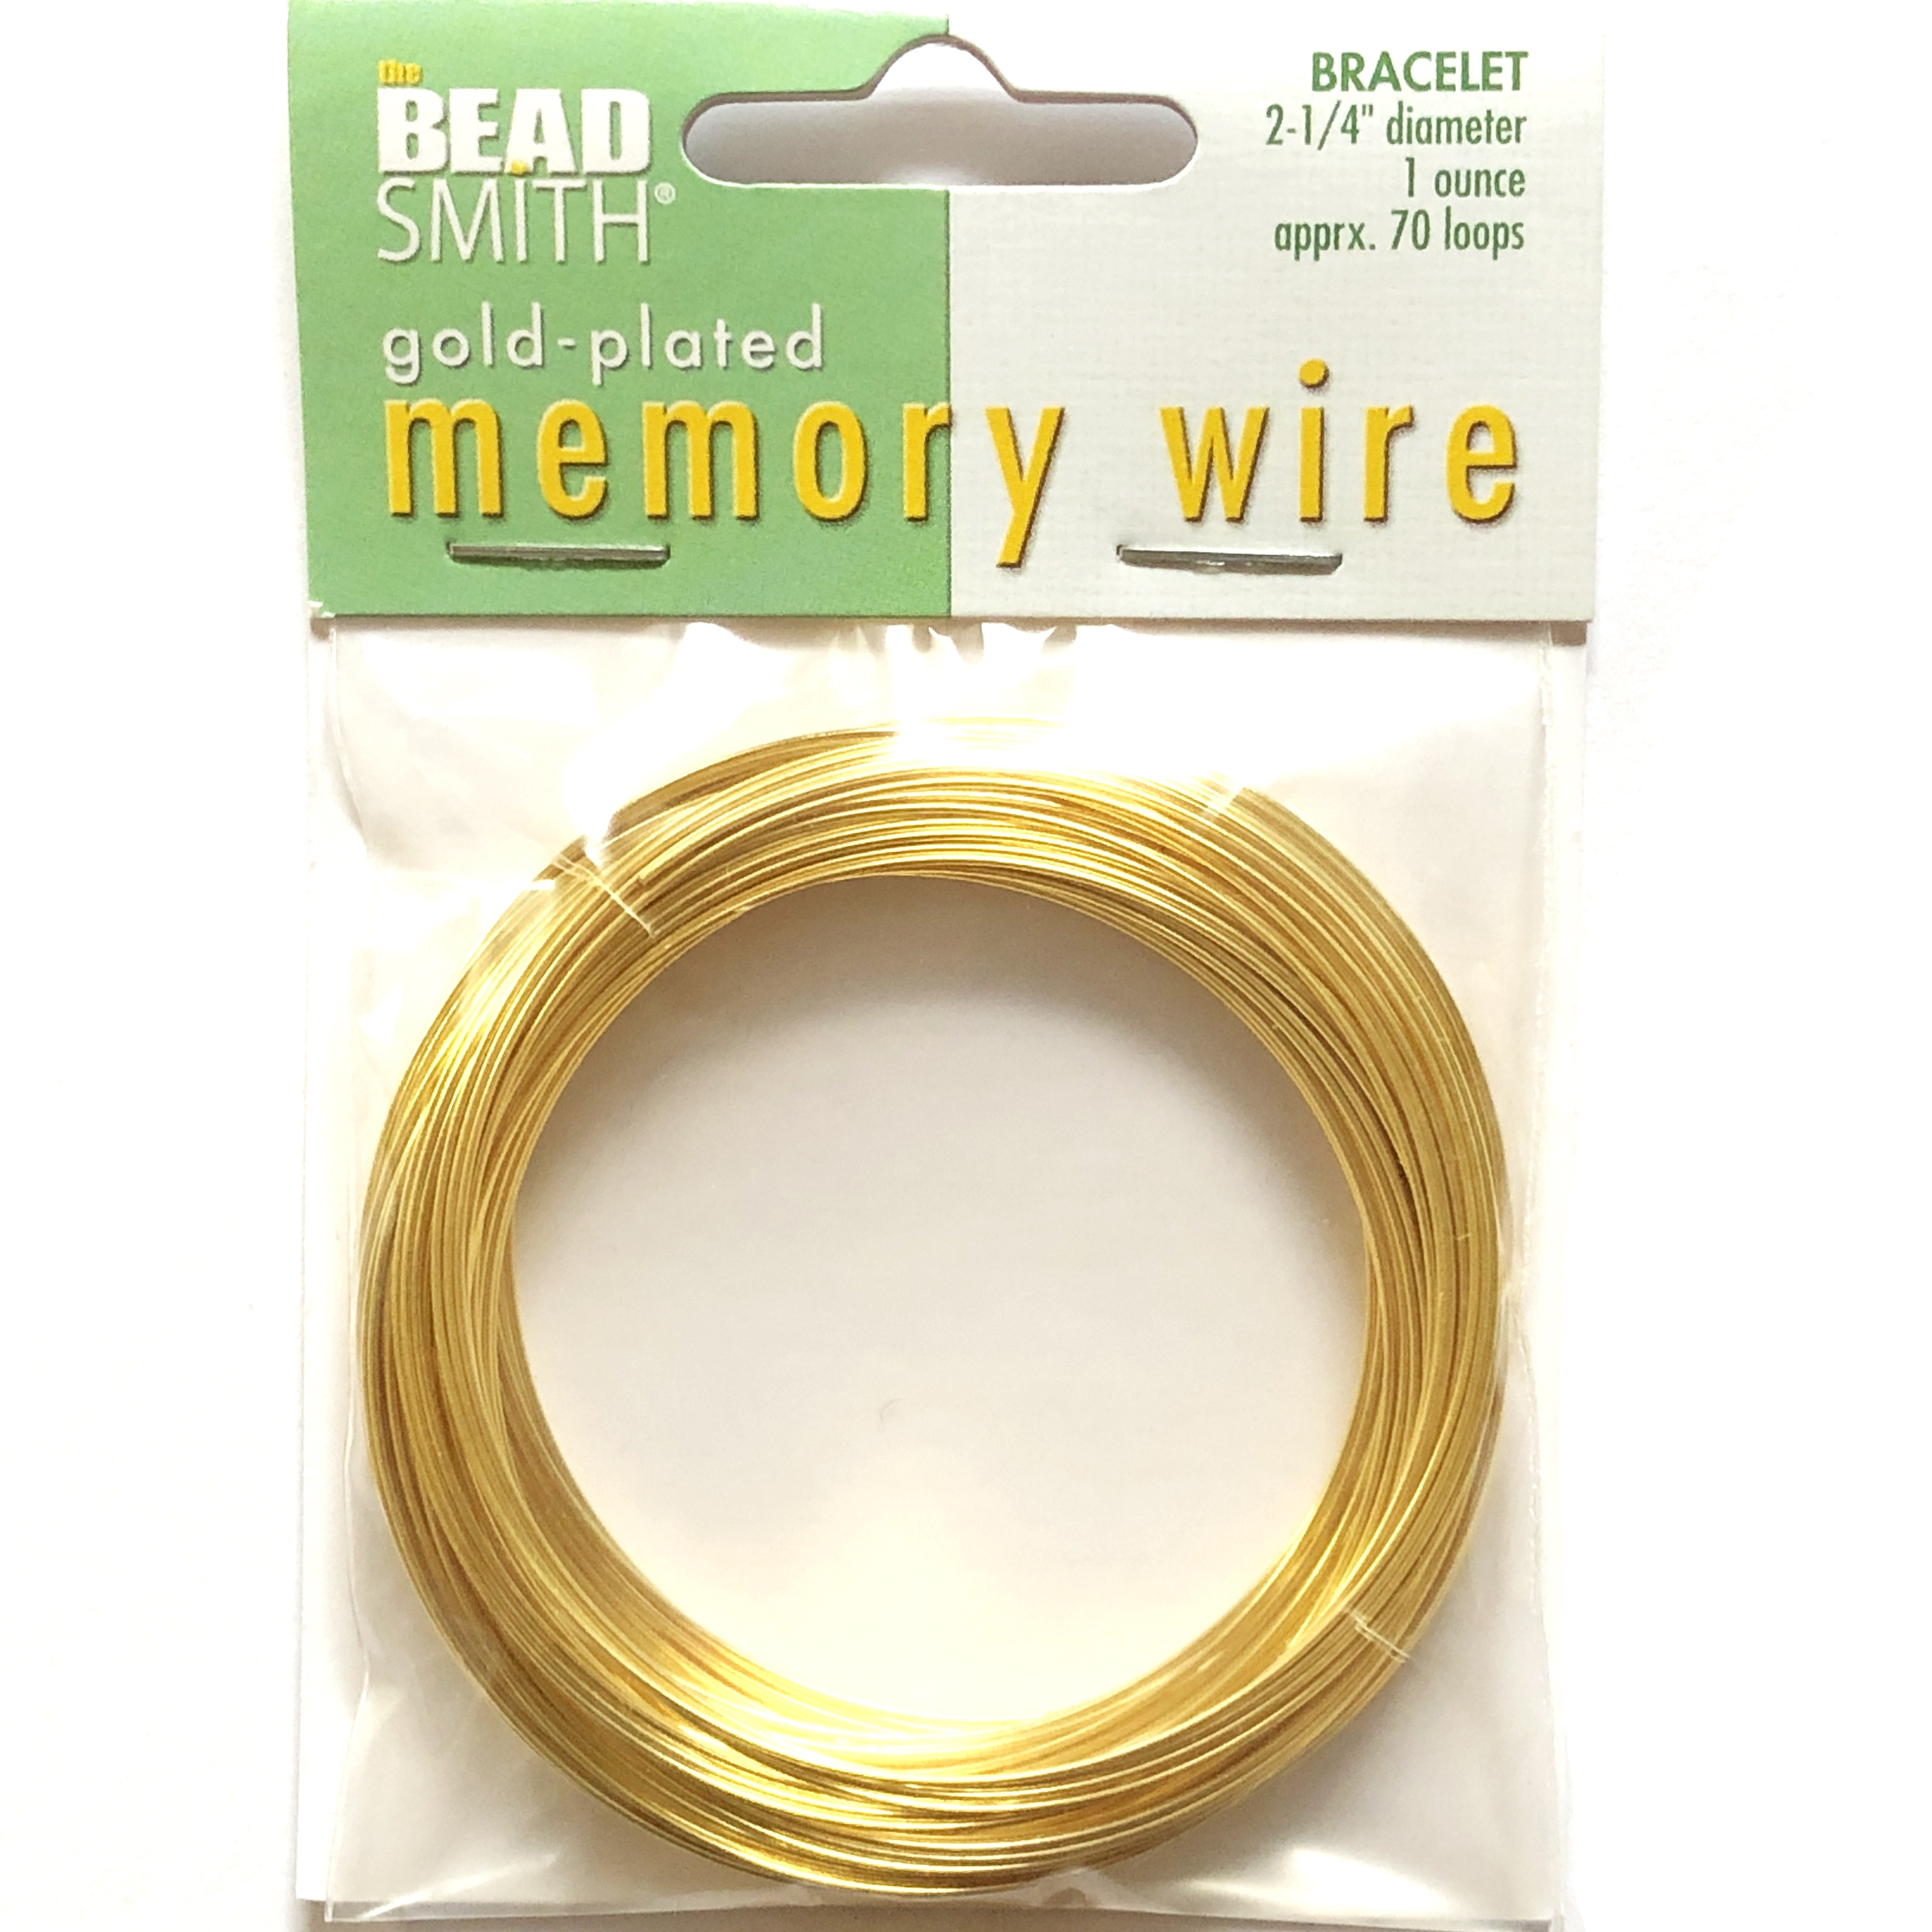 Round Memory Wire, Gold Plate, 09800, 2.25 inch, bracelet wire, jewelry wire, craft wire, jewelry making supplies, stainless steel memory wire, 70 loop wire, round wire